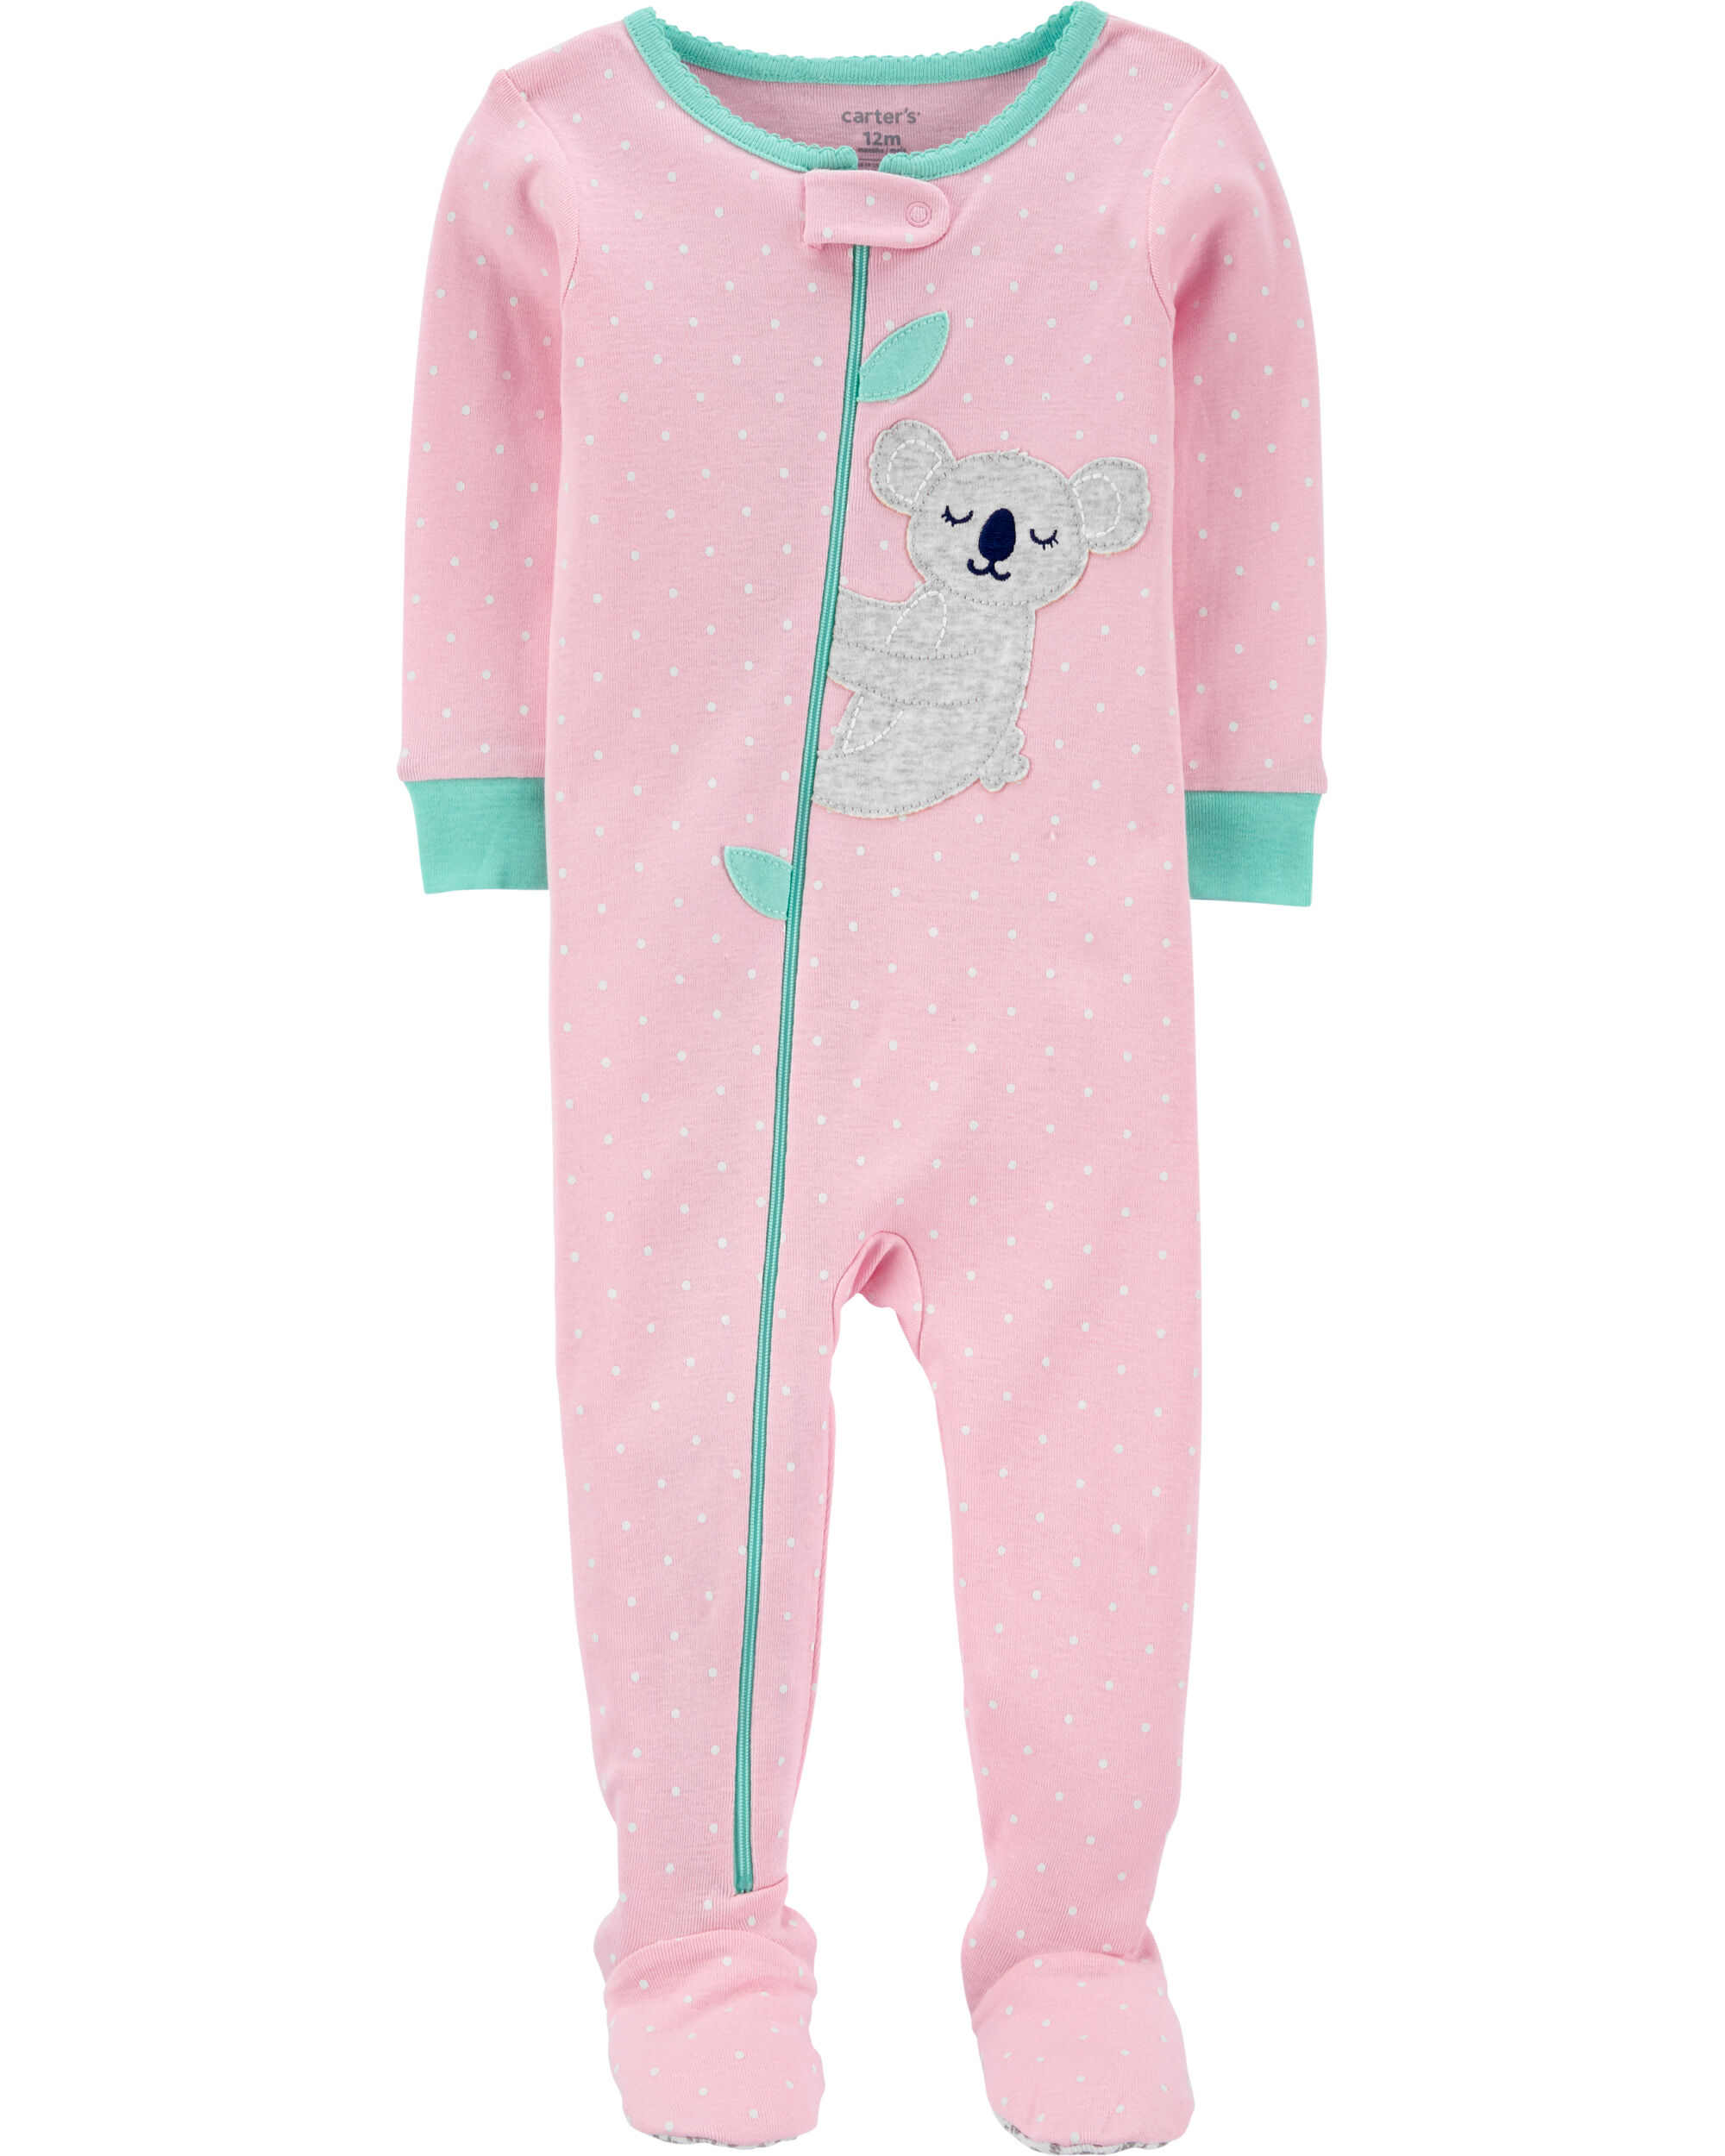 1-Piece Koala Snug Fit Cotton Footie PJs